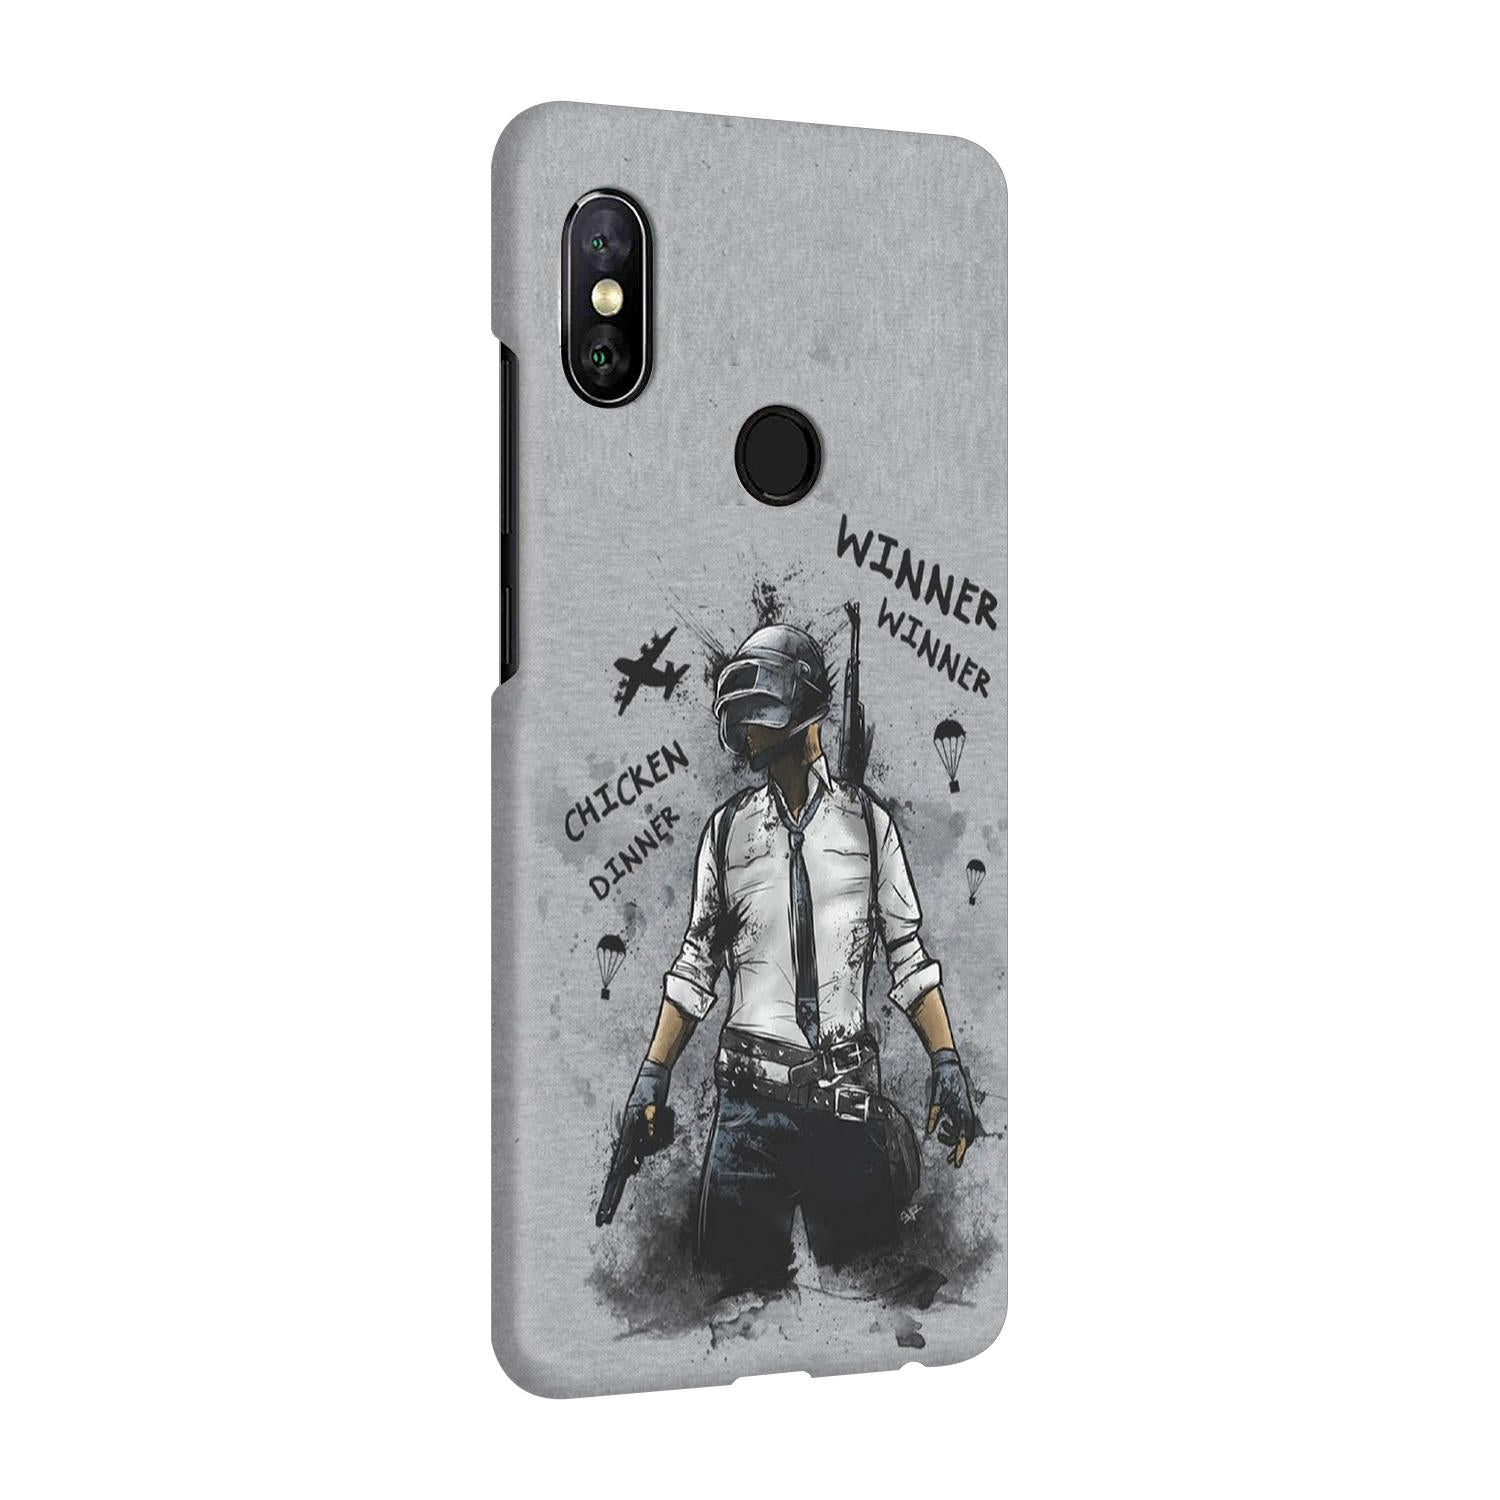 Winner Winner Chicken Dinner Typography Art Vivo V9 Mobile Cover Case - MADANYU